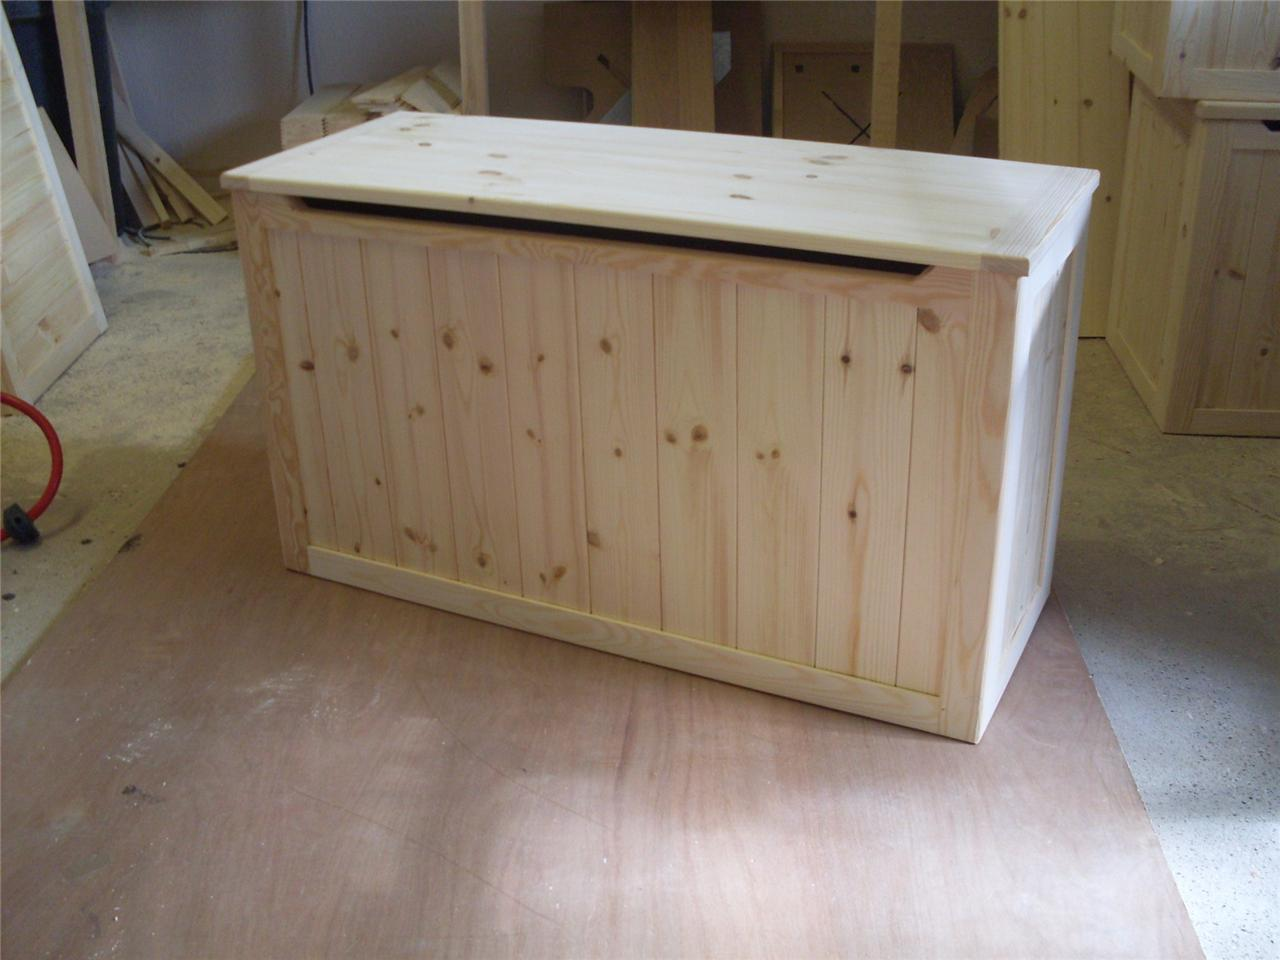 BEAUTIFUL HAND CRAFTED PINE WOODEN TOY BOX BLANKET BOX CHEST SEAT BOX